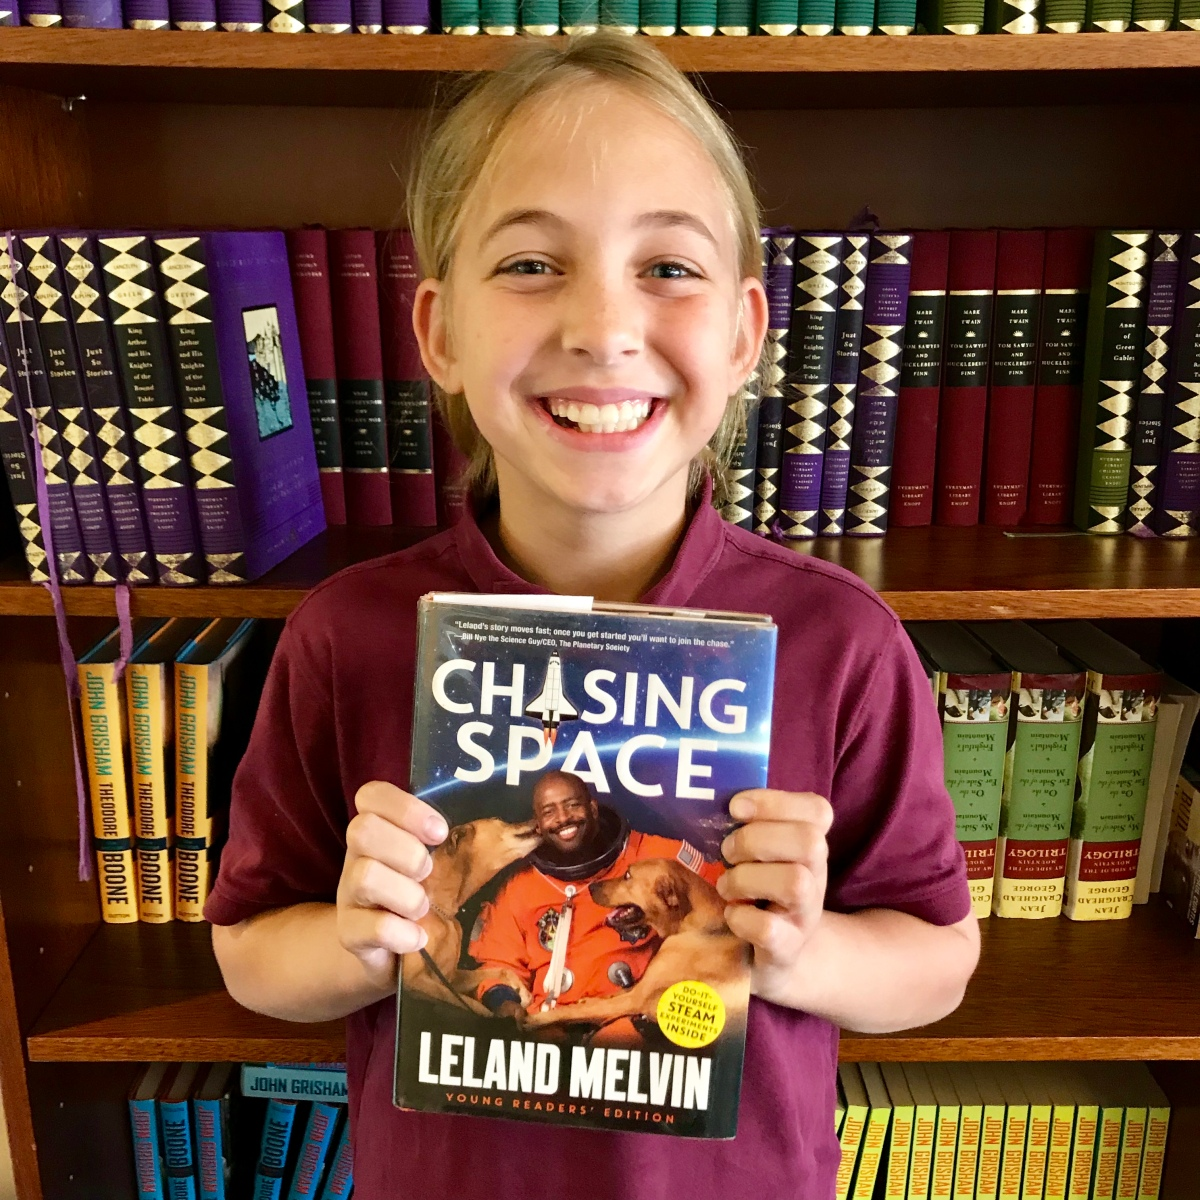 Fitz's Faves: Hadley's review of Chasing Space, by Leland Melvin